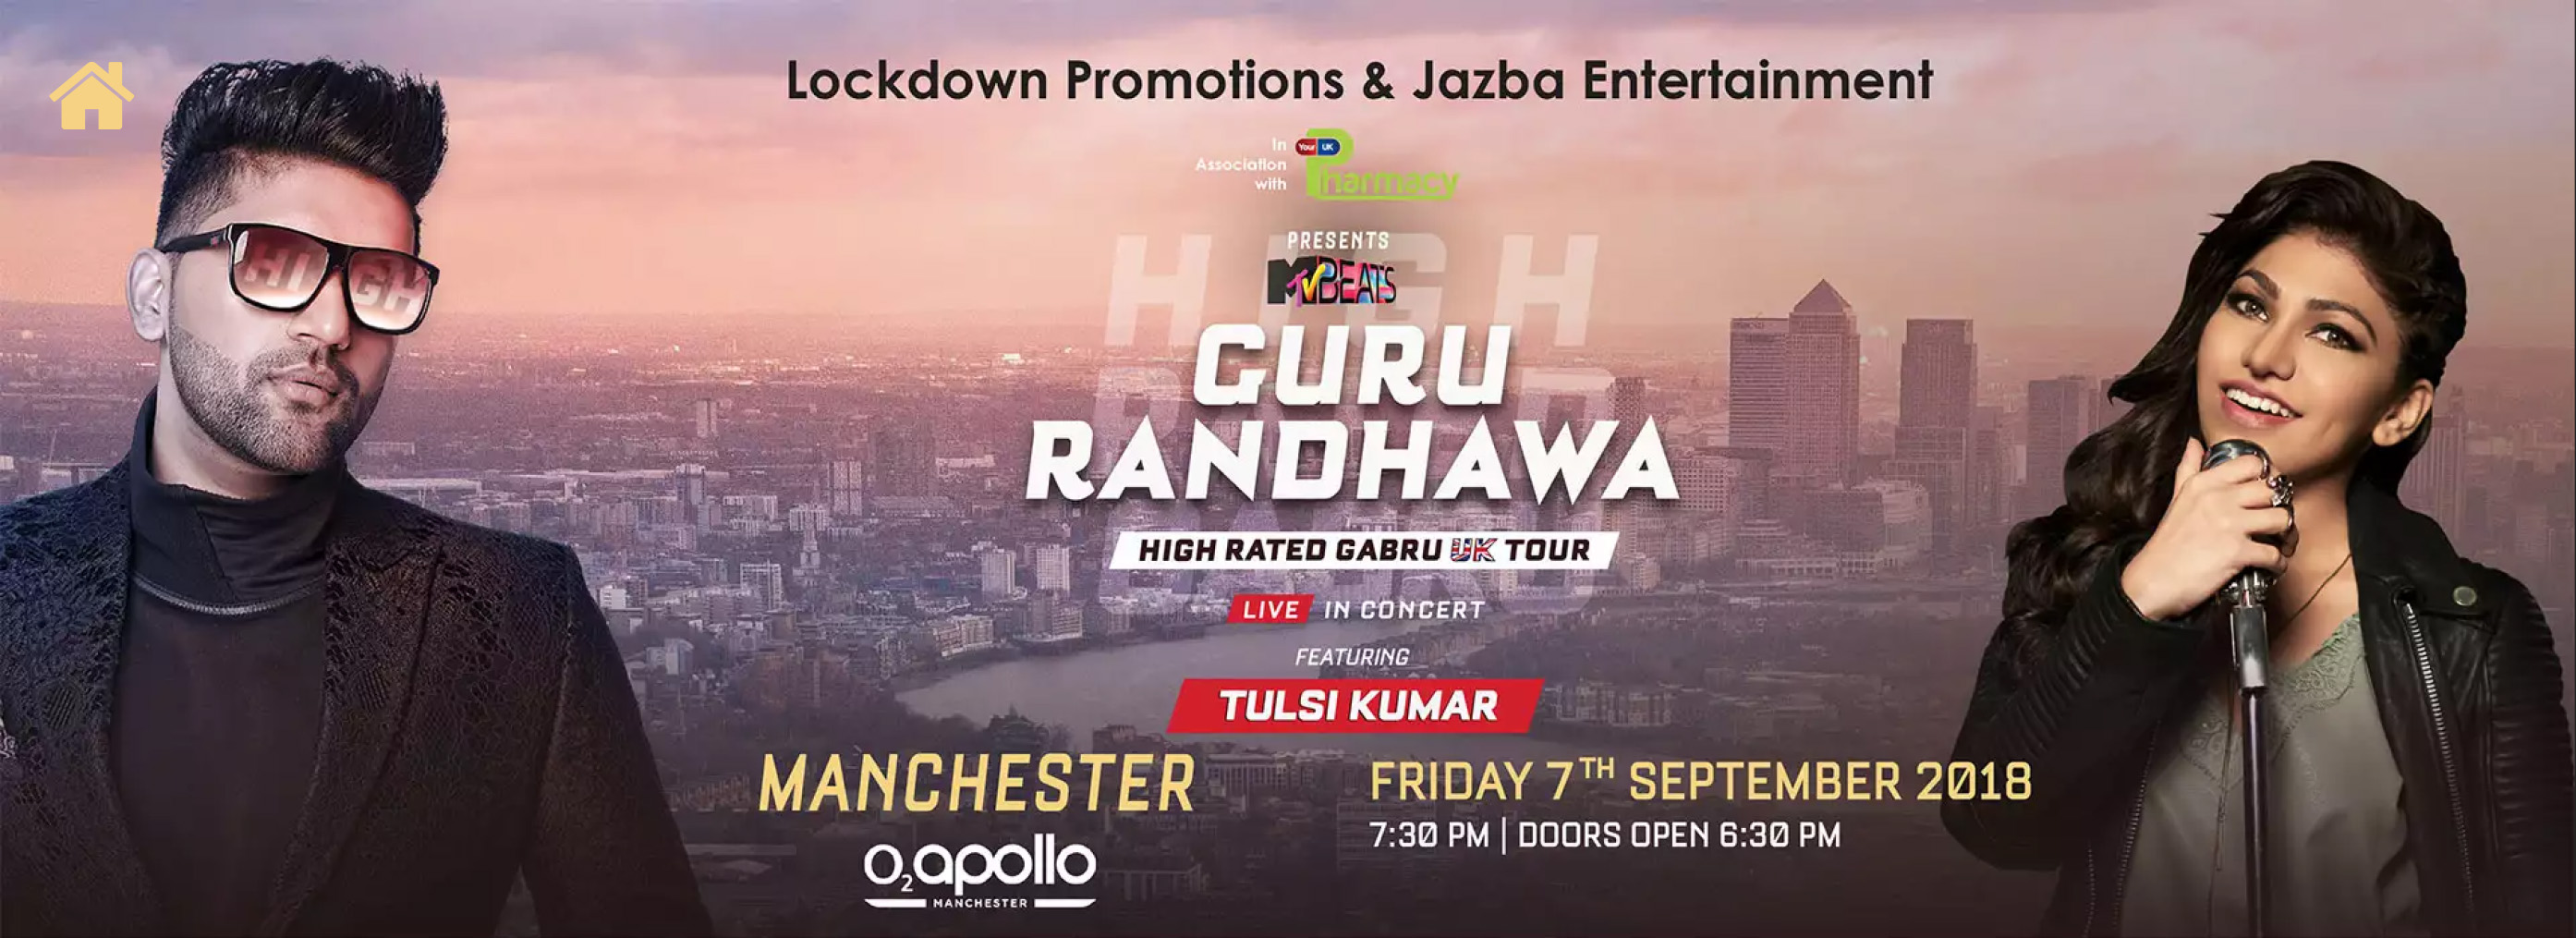 #GuruRandhawa Live for the first time in #Manchester on *7th September 2018* at #O2ApolloManchester. Feat. #TulsiKumar and Hosted by #NoreenKhan #LagdiLahoreDiAh #Highratedgabru